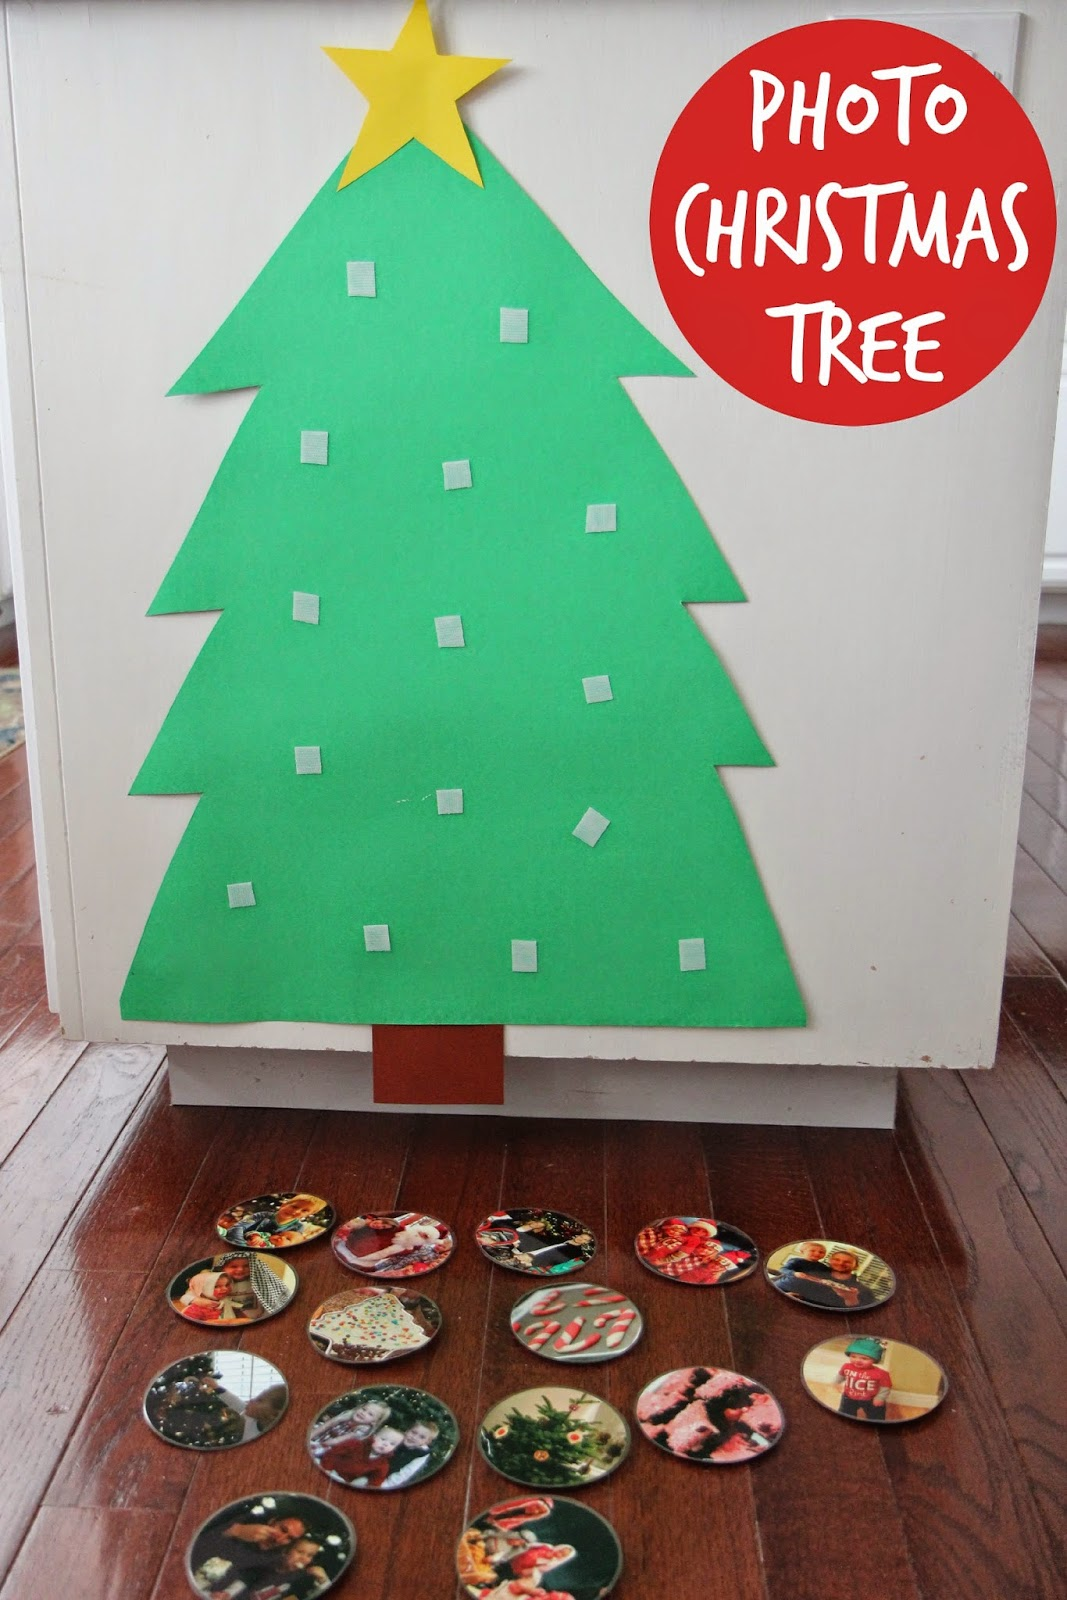 Toddler Approved!: Build a Photo Christmas Tree for Babies & Toddlers